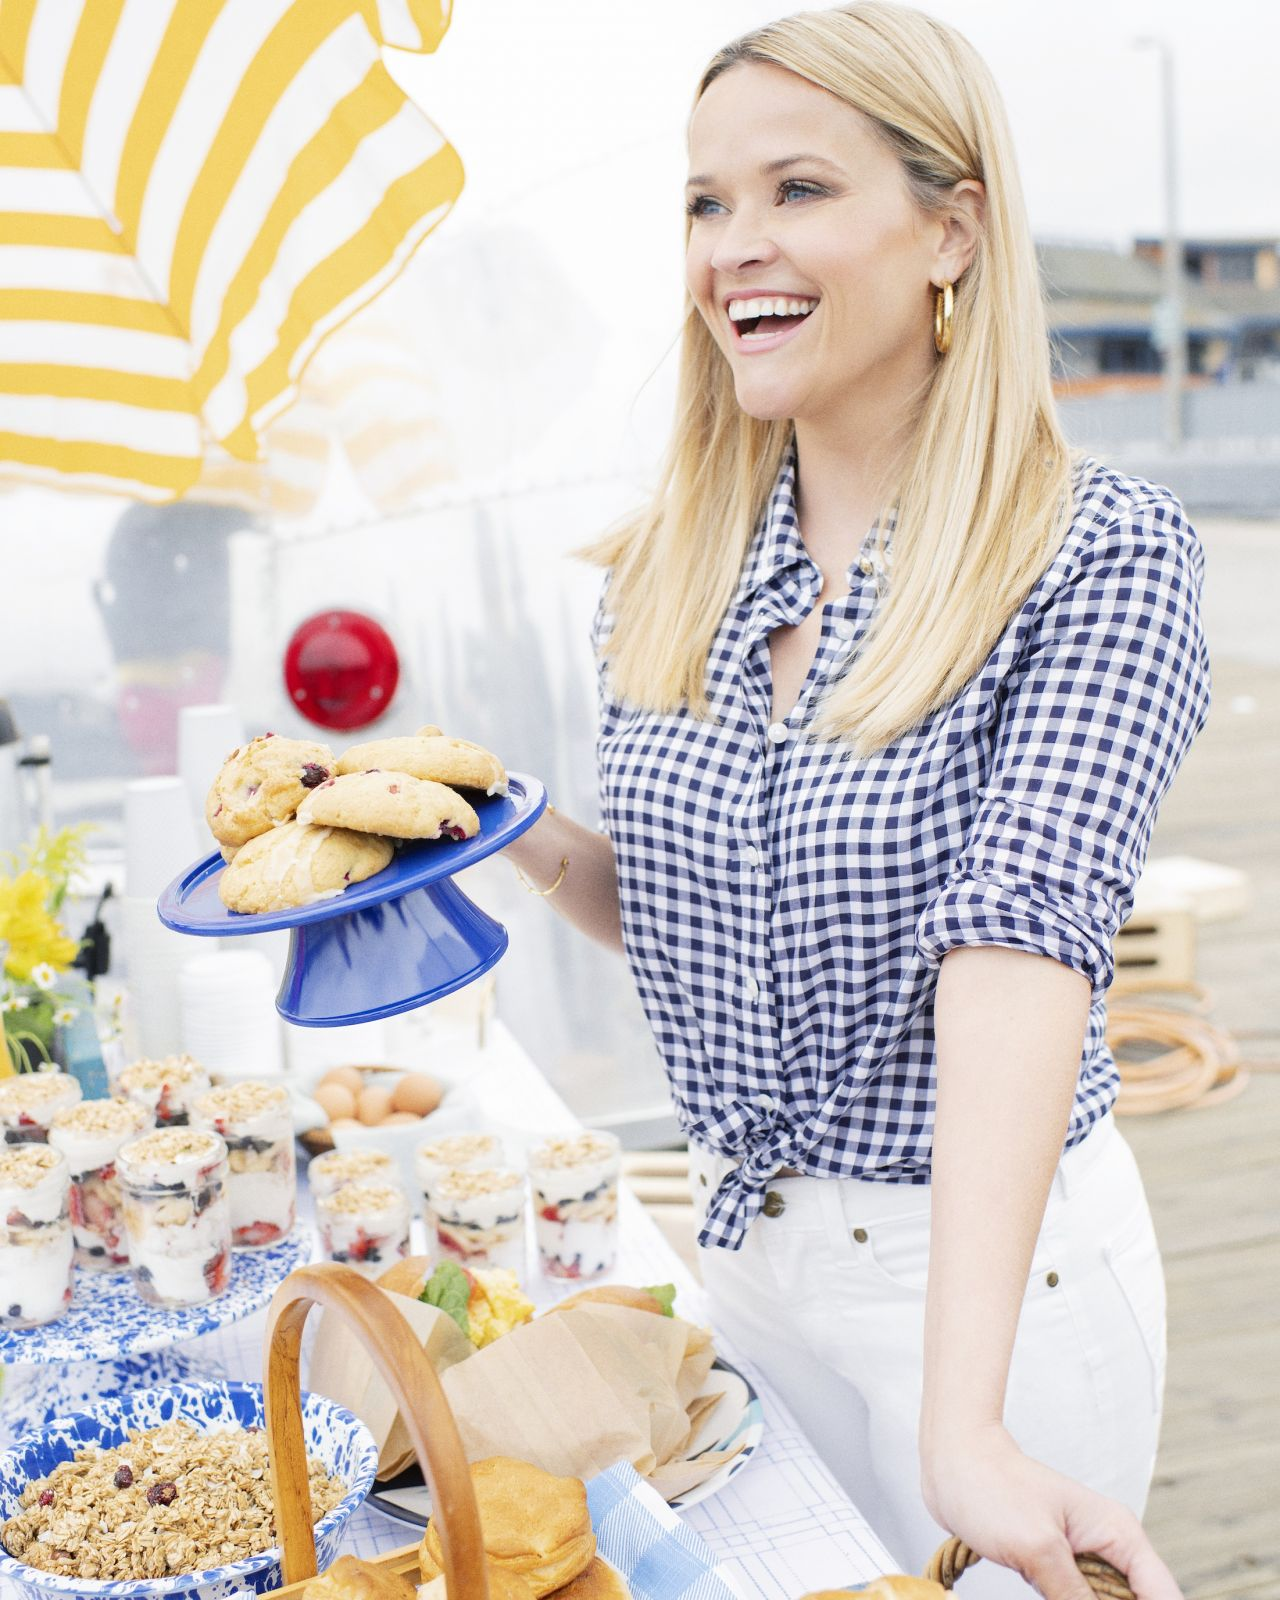 http://celebmafia.com/wp-content/uploads/2018/05/reese-witherspoon-draper-james-clothing-line-summer-campaign-2018-2.jpg